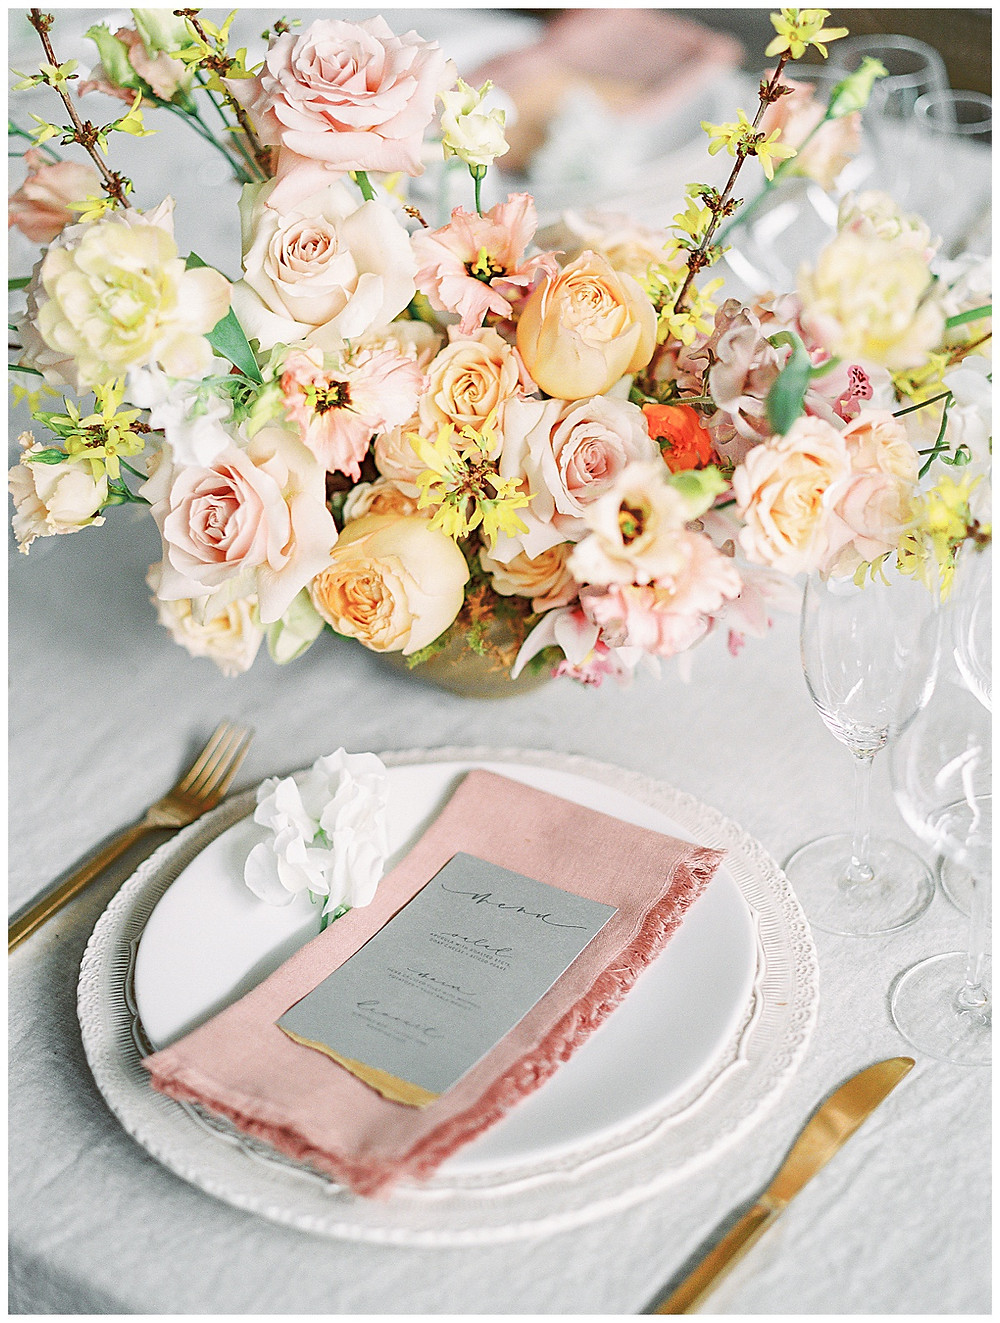 film photography dallas wedding, table setting with yellow, peach, pink flowers, pink napkin, gold silverware, dallas wedding photographer, beatbox portraits, The Place At Tyler, Dallas Texas , dallas wedding photography